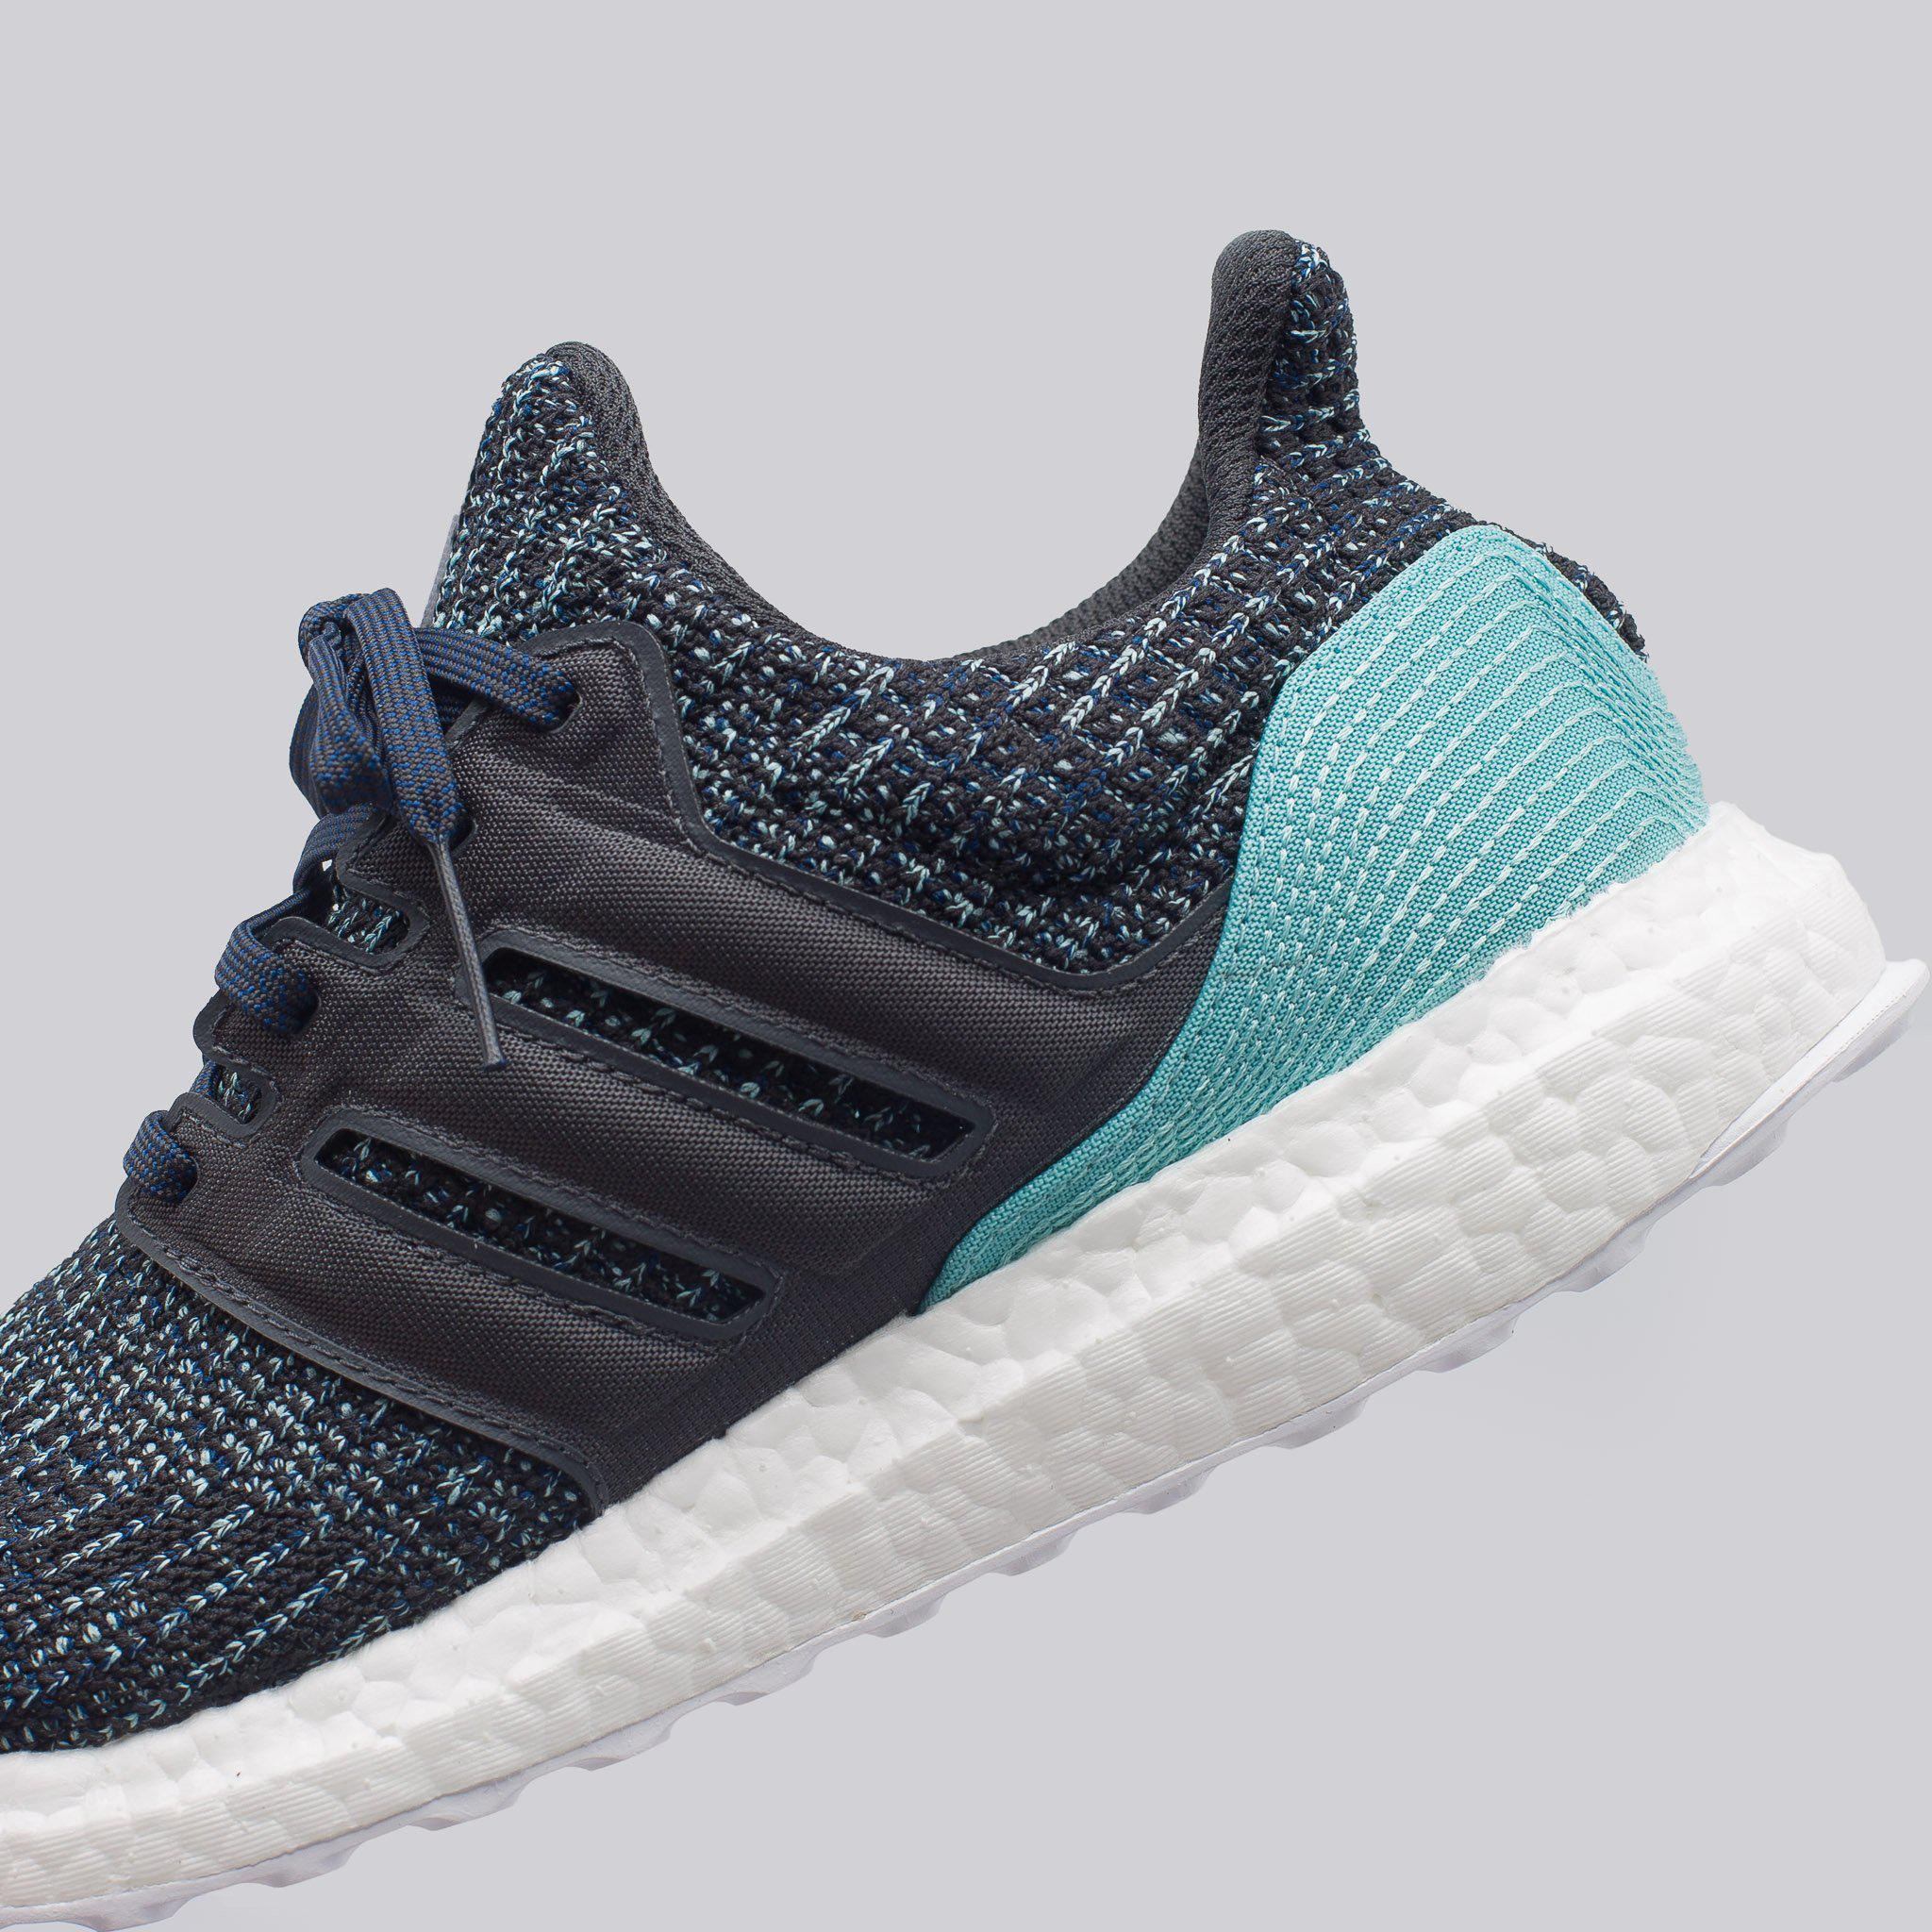 big sale 0a617 b8804 buy online 29104 a9159 Lyst - adidas Parley Ultraboost In Carbon in Blue  for Men